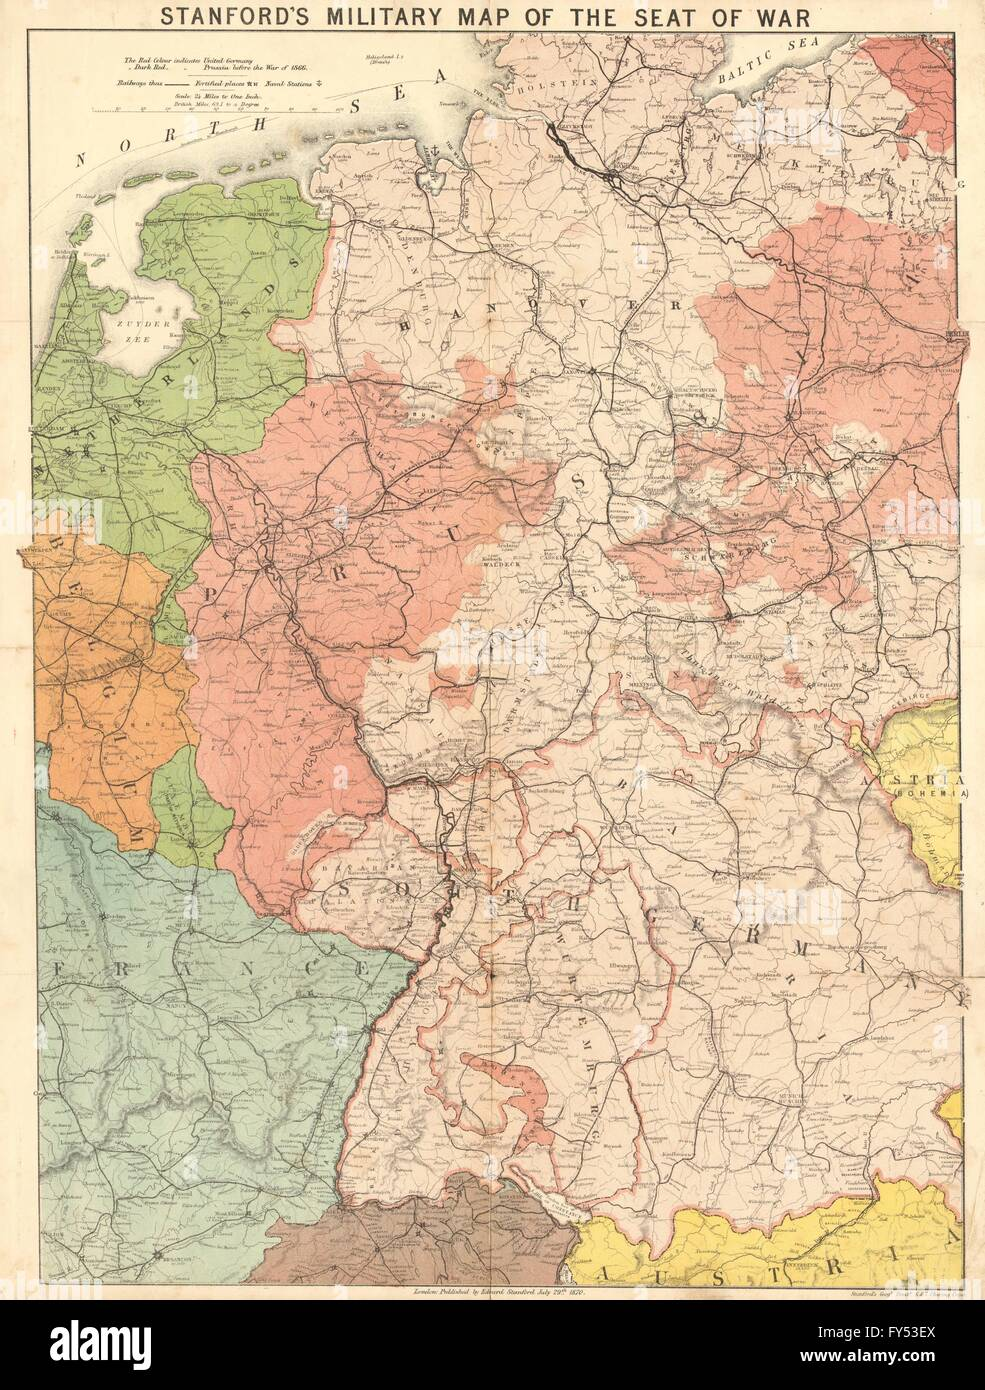 Map Of Germany 1870.Stanford S Military Map Of The Seat Of War Franco Prussian War